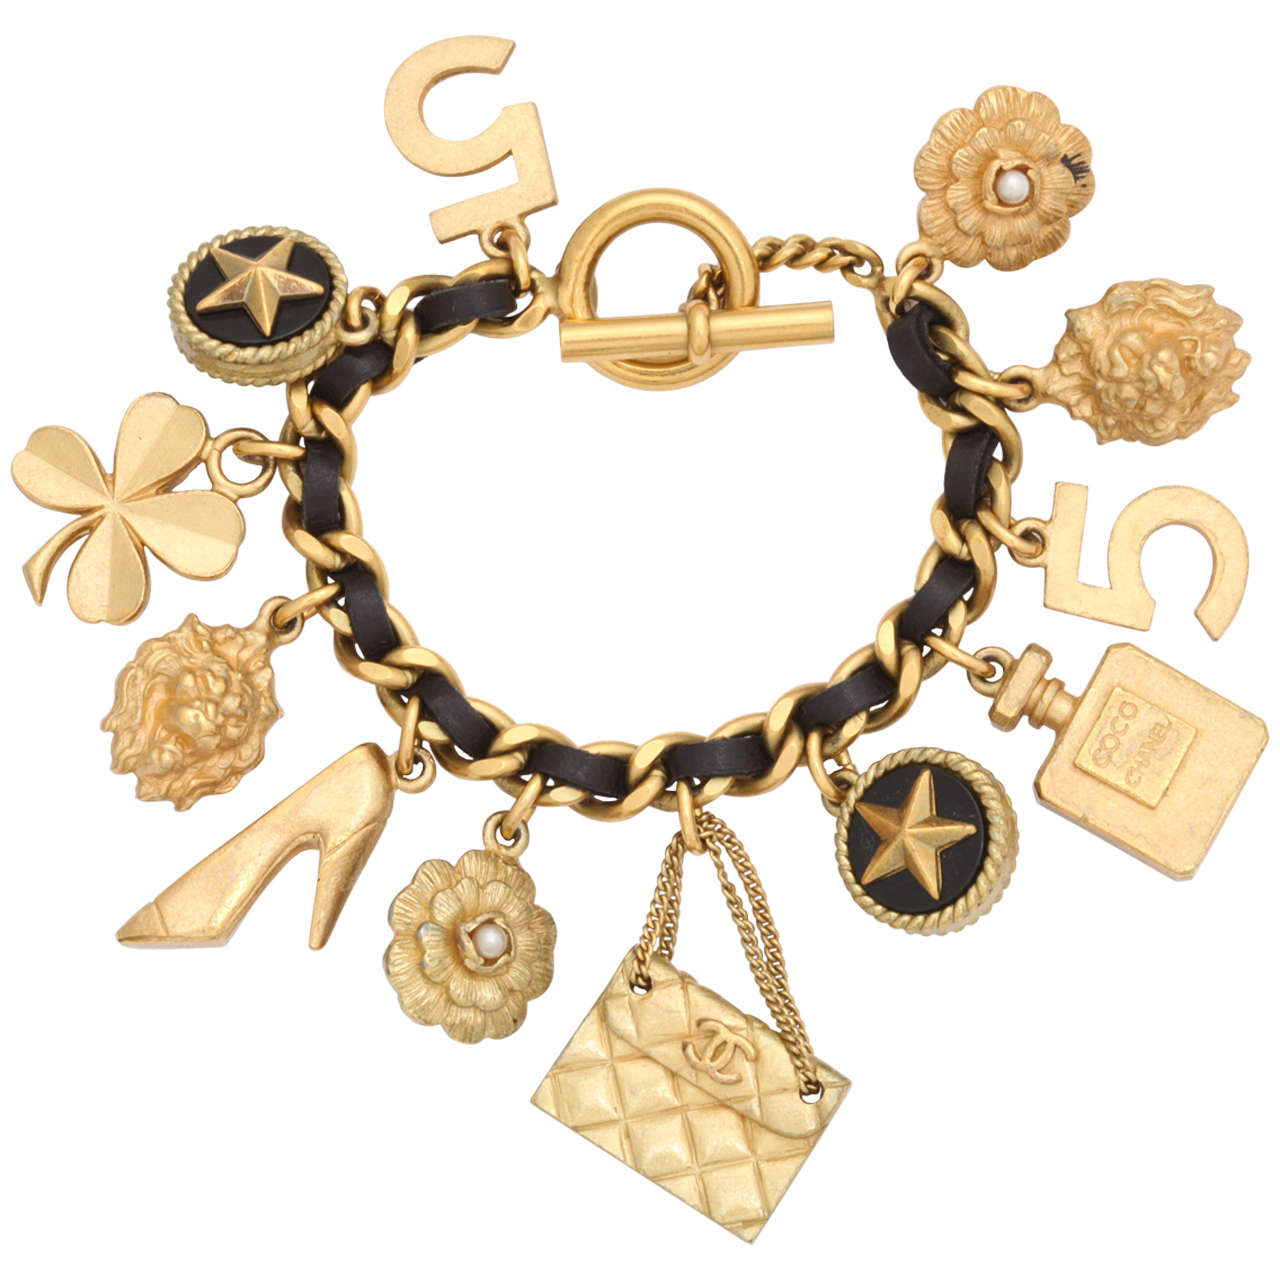 Vintage Chanel Iconic Charm Bracelet with Black Leather/Gold Chain For Sale